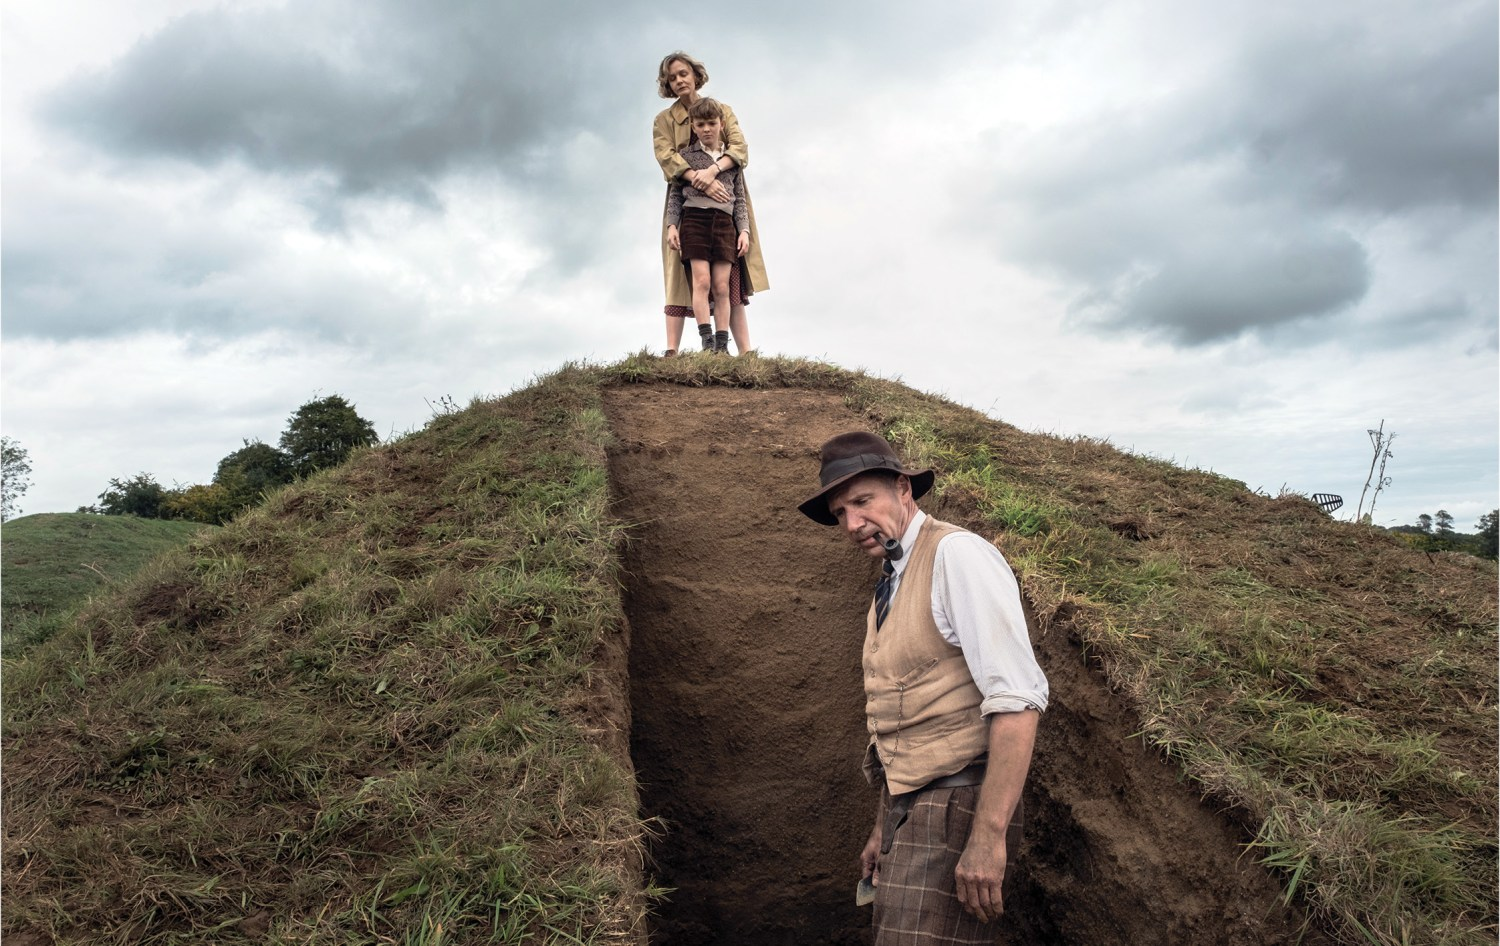 above Ralph Fiennes as Basil Brown, Carey Mulligan as Edith Pretty, and Archie Barnes as her son Robert, at the recreated Sutton Hoo mound in The Dig. right Ben Chaplin and Lily James play archaeologists Stuart and Peggy Piggott.